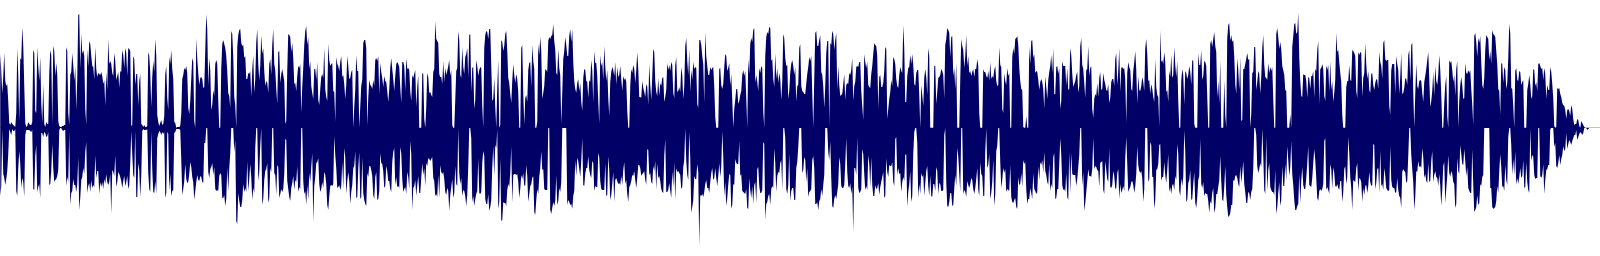 waveform of track #159656